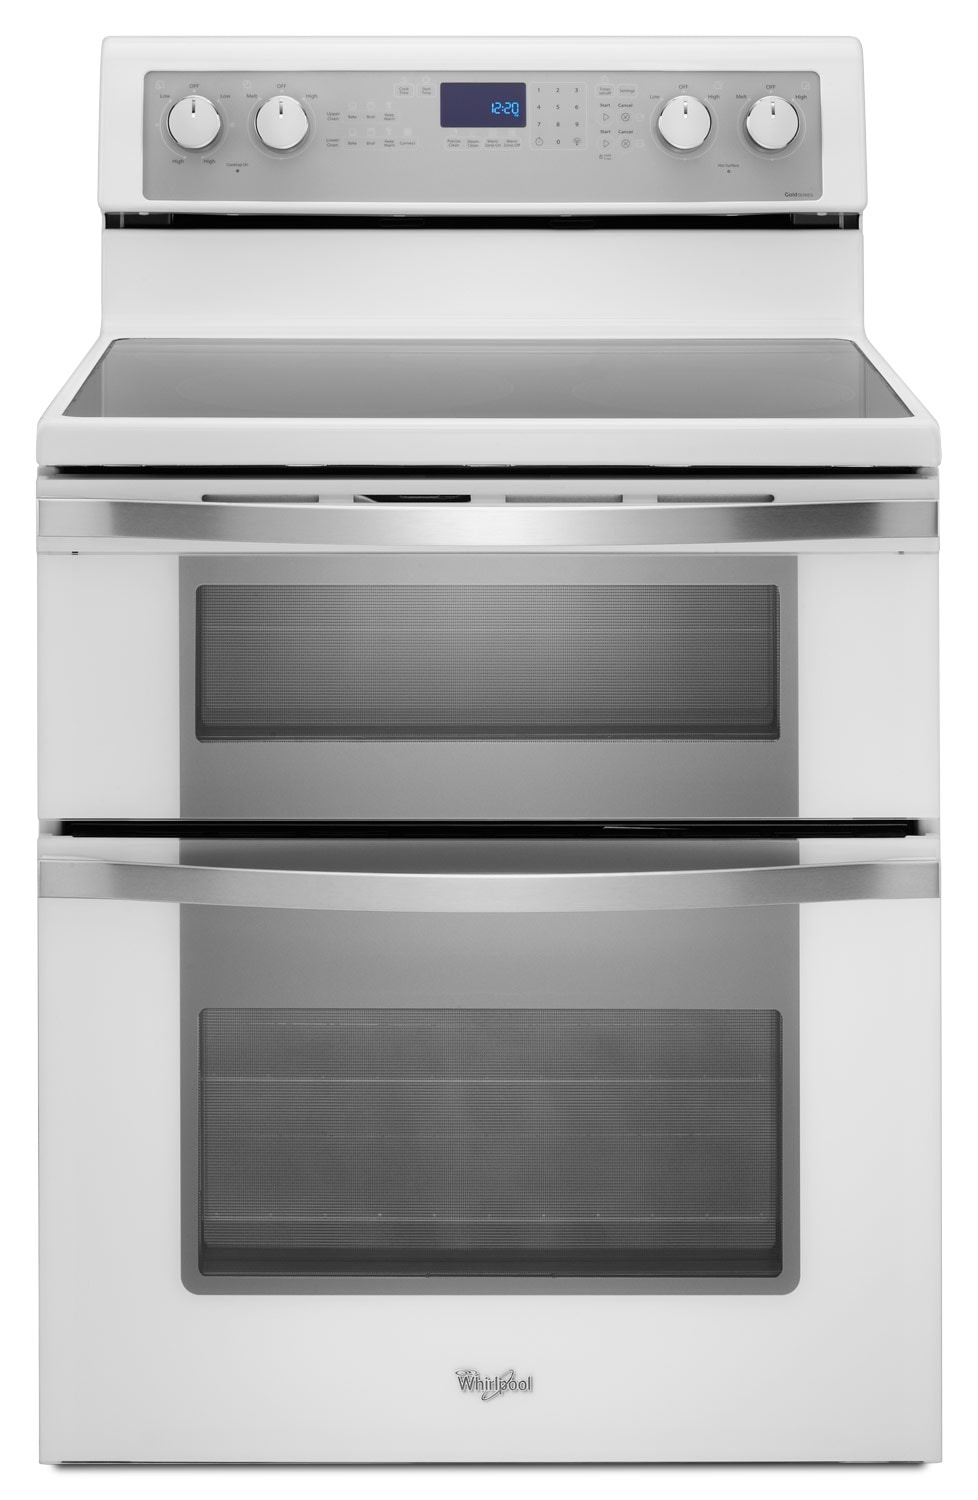 [Whirlpool White Ice Freestanding Double Electric Range (6.7 Cu. Ft.) - YWGE755C0BH]